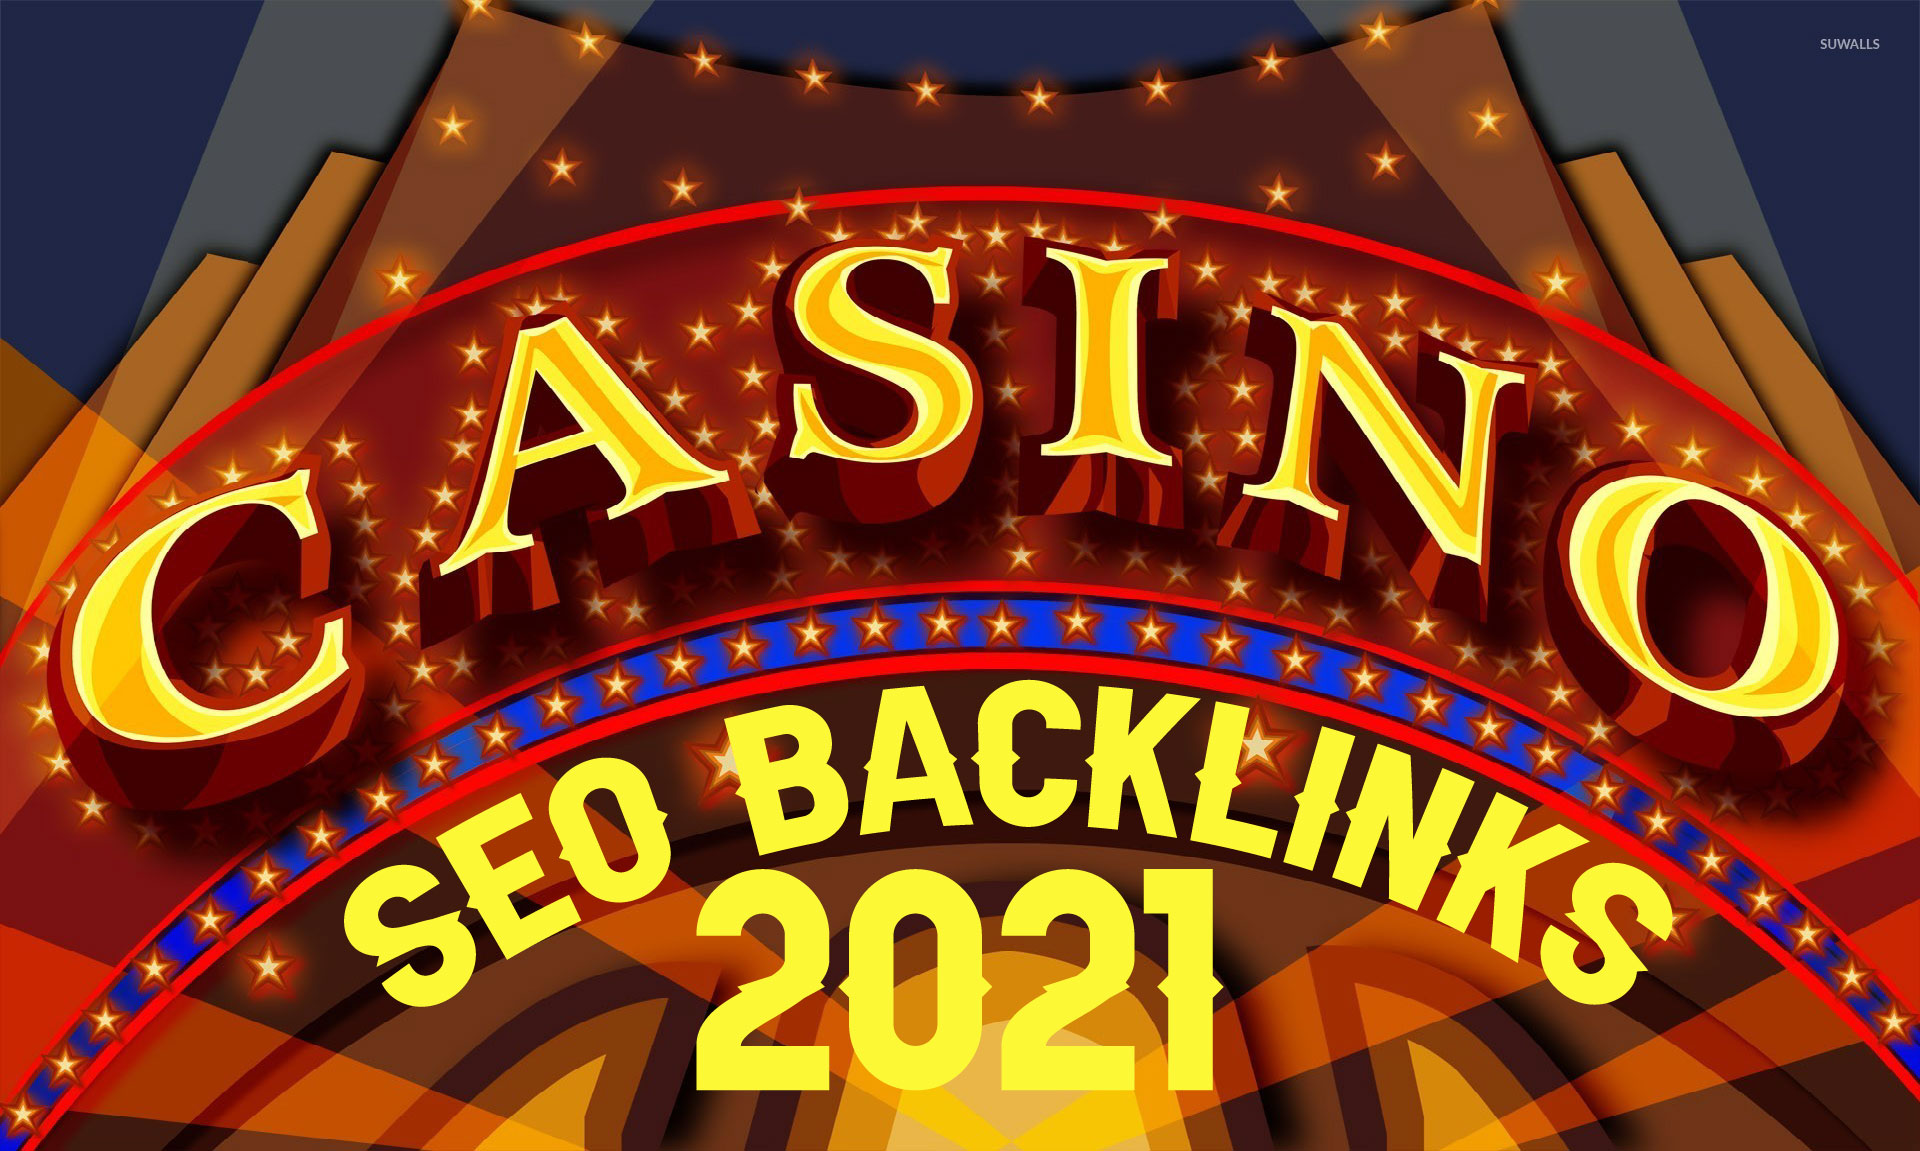 Skyrocket 150 Backlinks package for Casino/Pbn/Gambling Links Google Ranking 2021